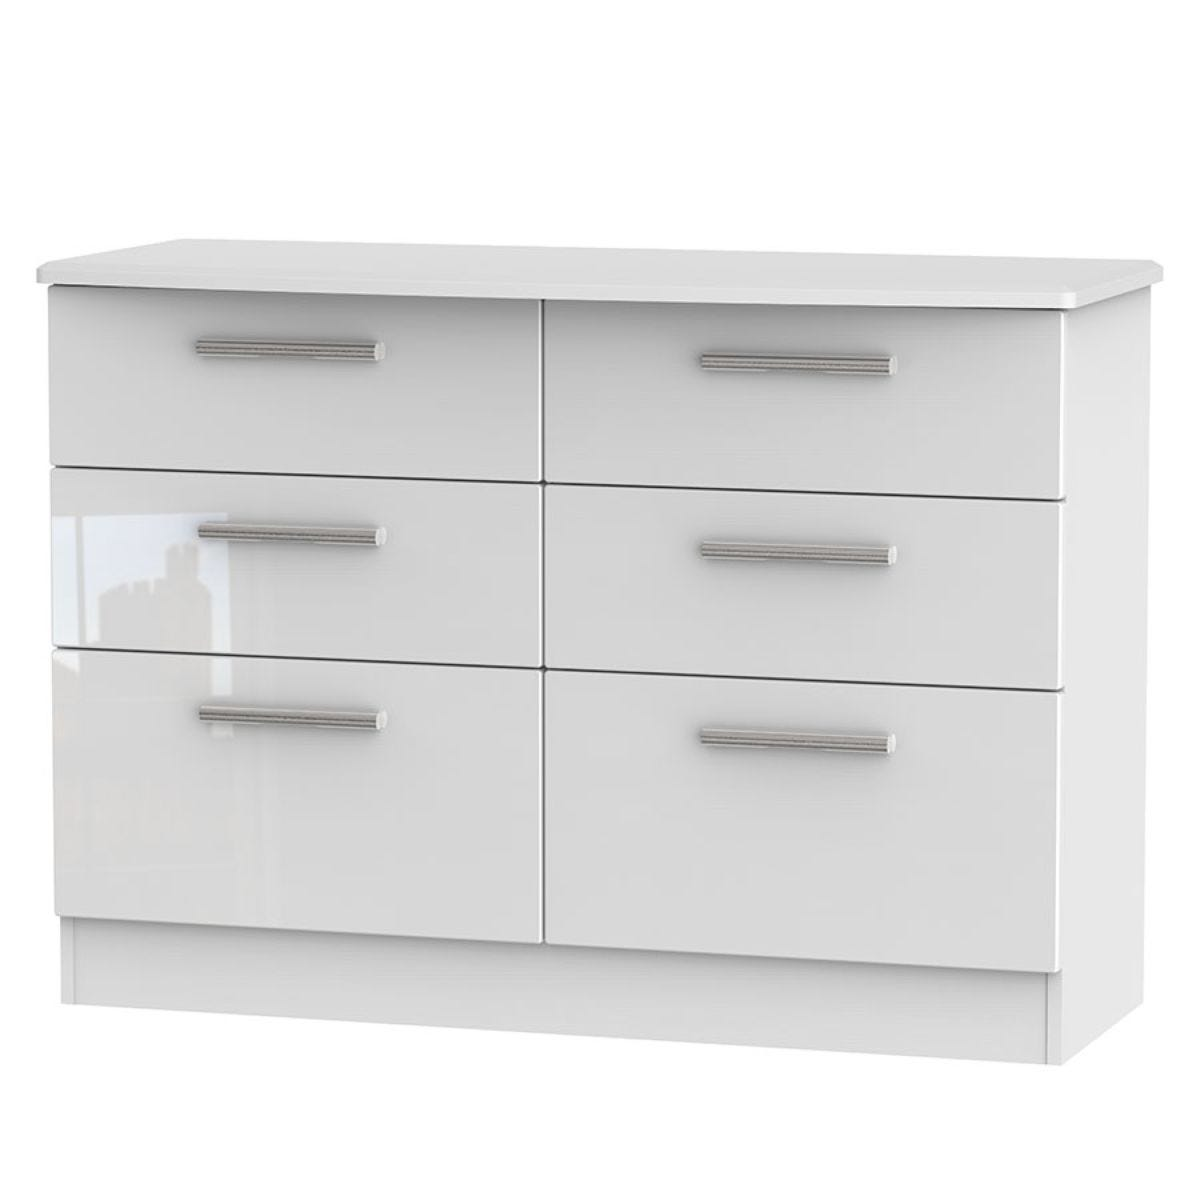 Fourisse 6-Drawer Midi Chest of Drawers - White